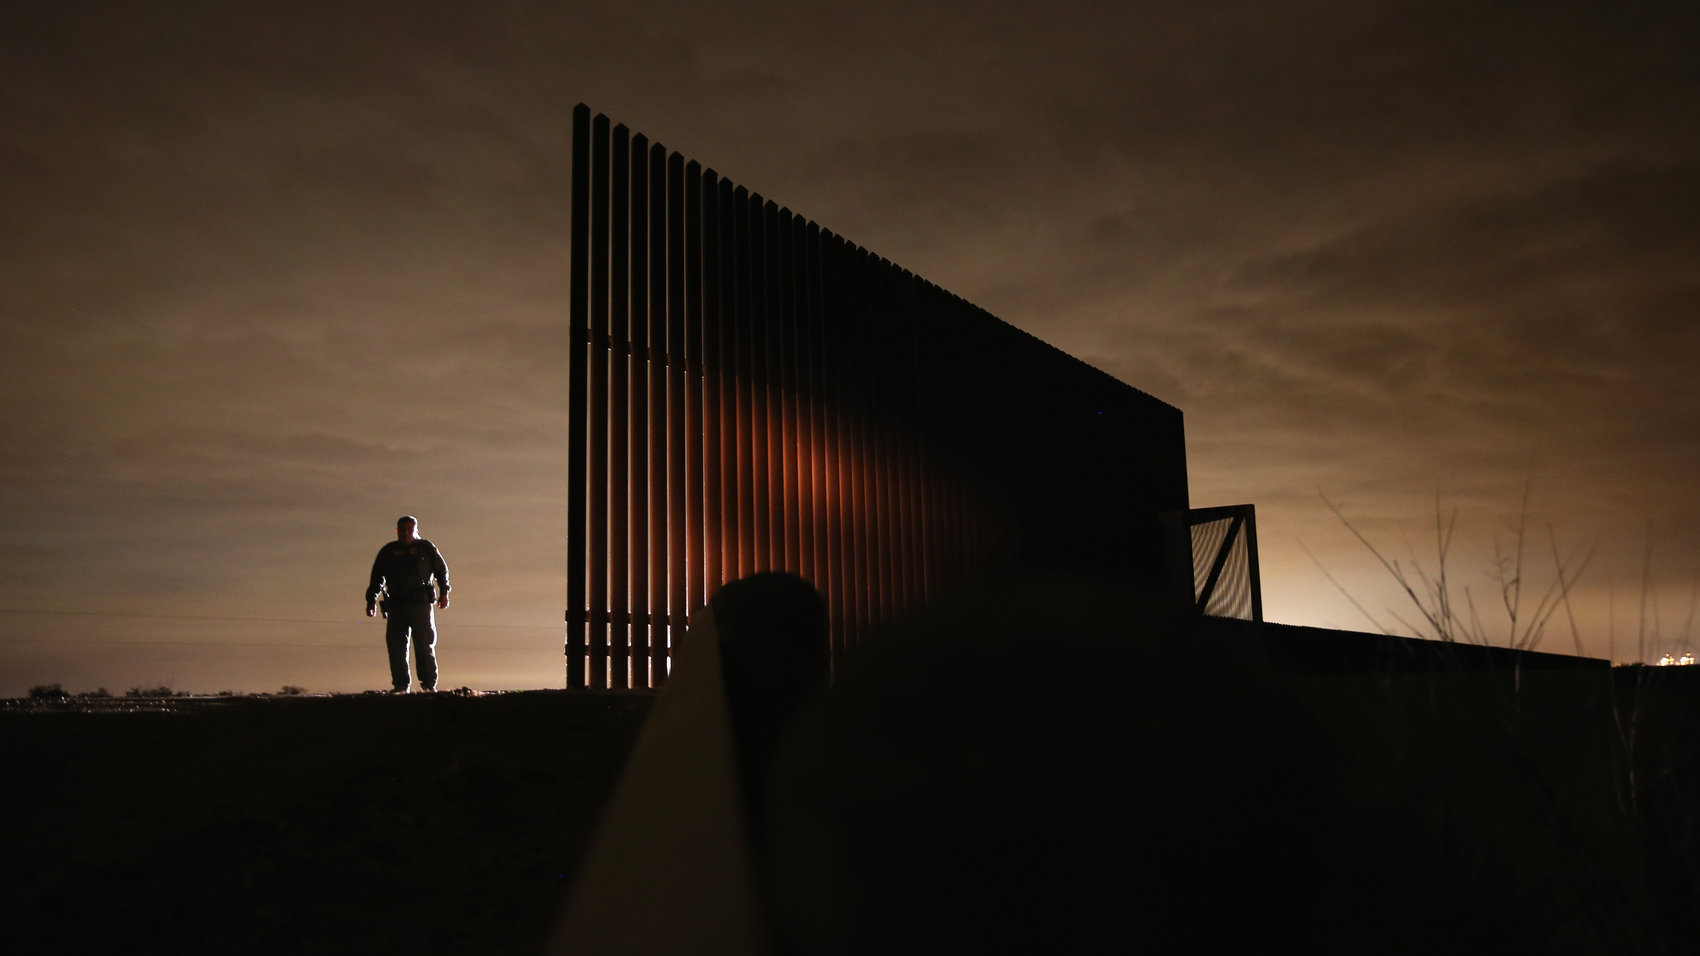 "A Border Patrol agent stands near a new fence segment while on patrol in Texas in 2012. This new design prevents people from walking through and climbing over the fence. In areas where following the Rio Grande's curves would be too expensive, new segments are built farther inland. This cuts off American land from the rest of the country. Dinan, Stephen. ""Border Fence Is in the Eye of the Beholder."" The Washington Times, 24 June 2013, http://www.washingtontimes.com/news/2013/jun/24/border-fence-eye-beholder/?page=all"